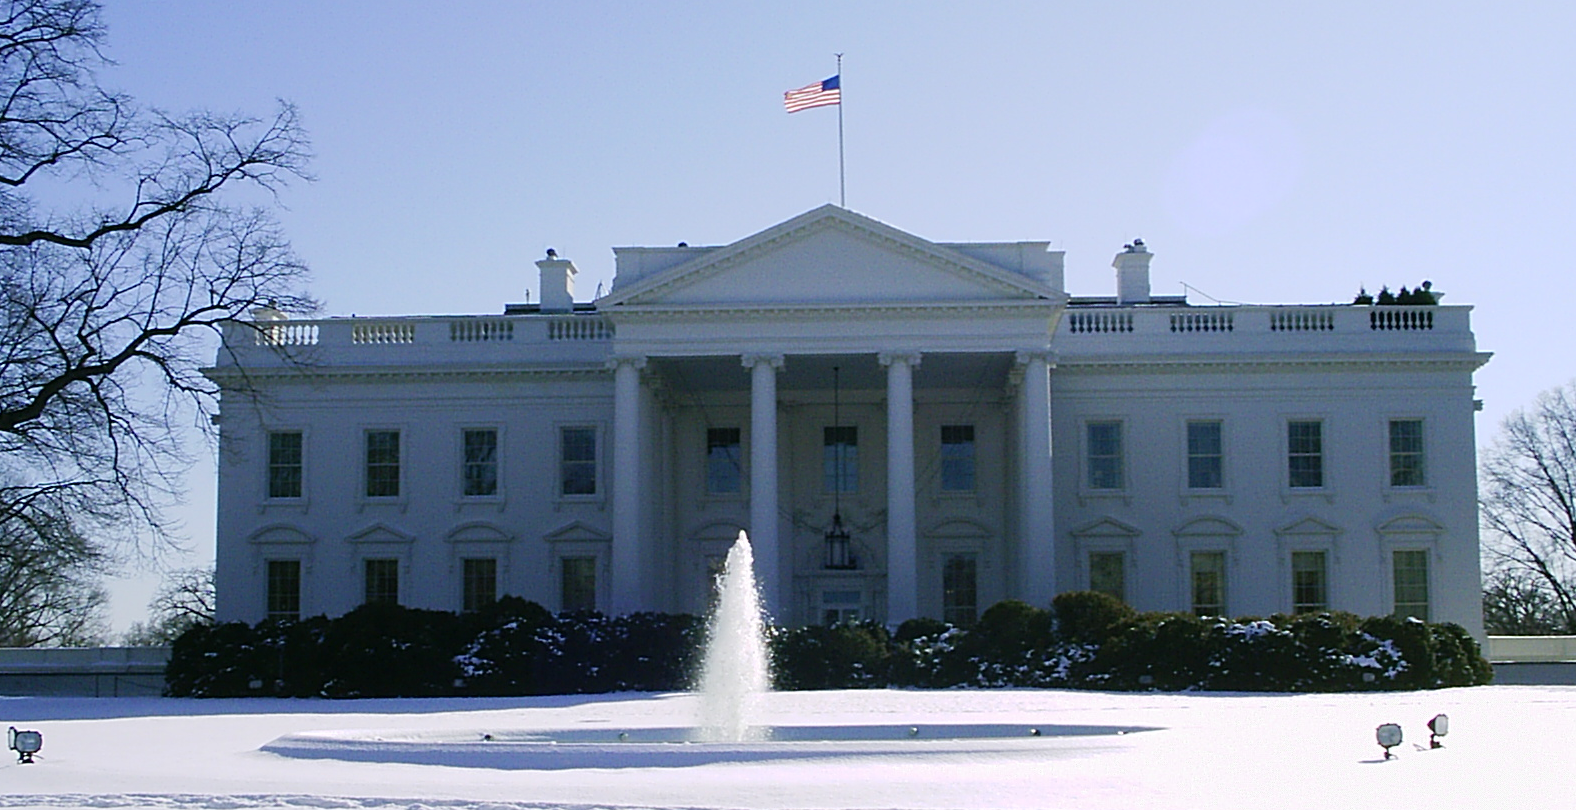 Picture of the White House which recently approved the Solar Tax